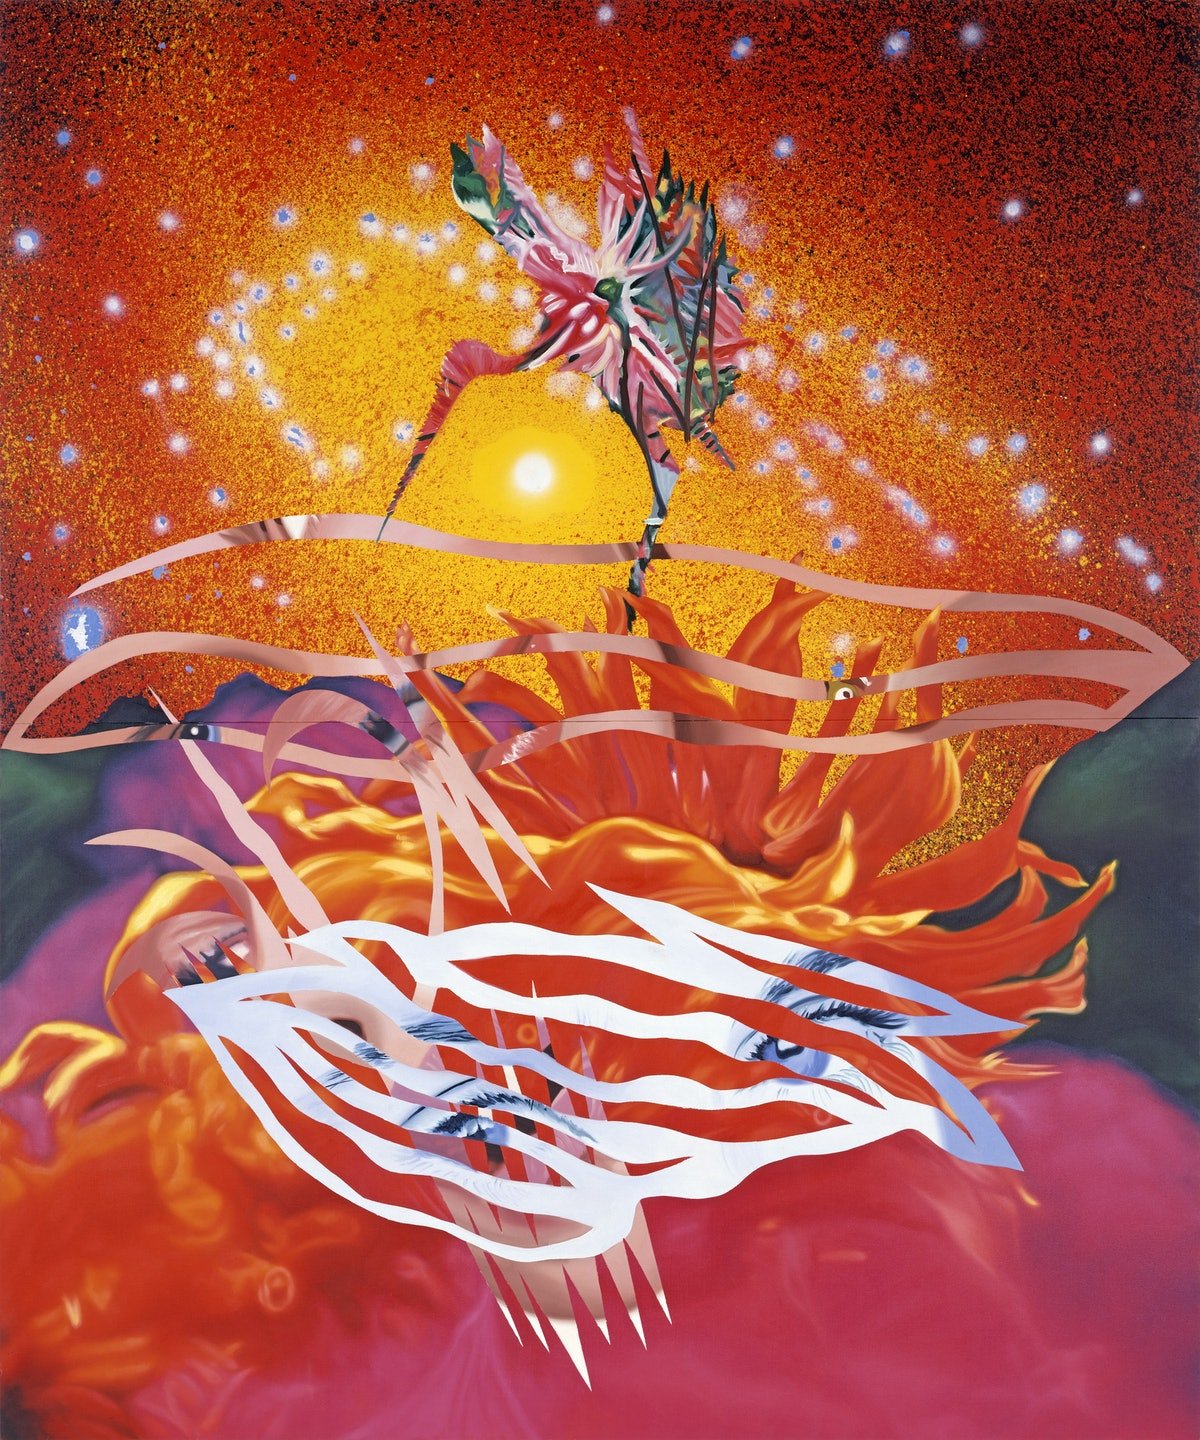 Rosenquist - The Bird of Paradise Approaches the Hot Water Planet.jpg